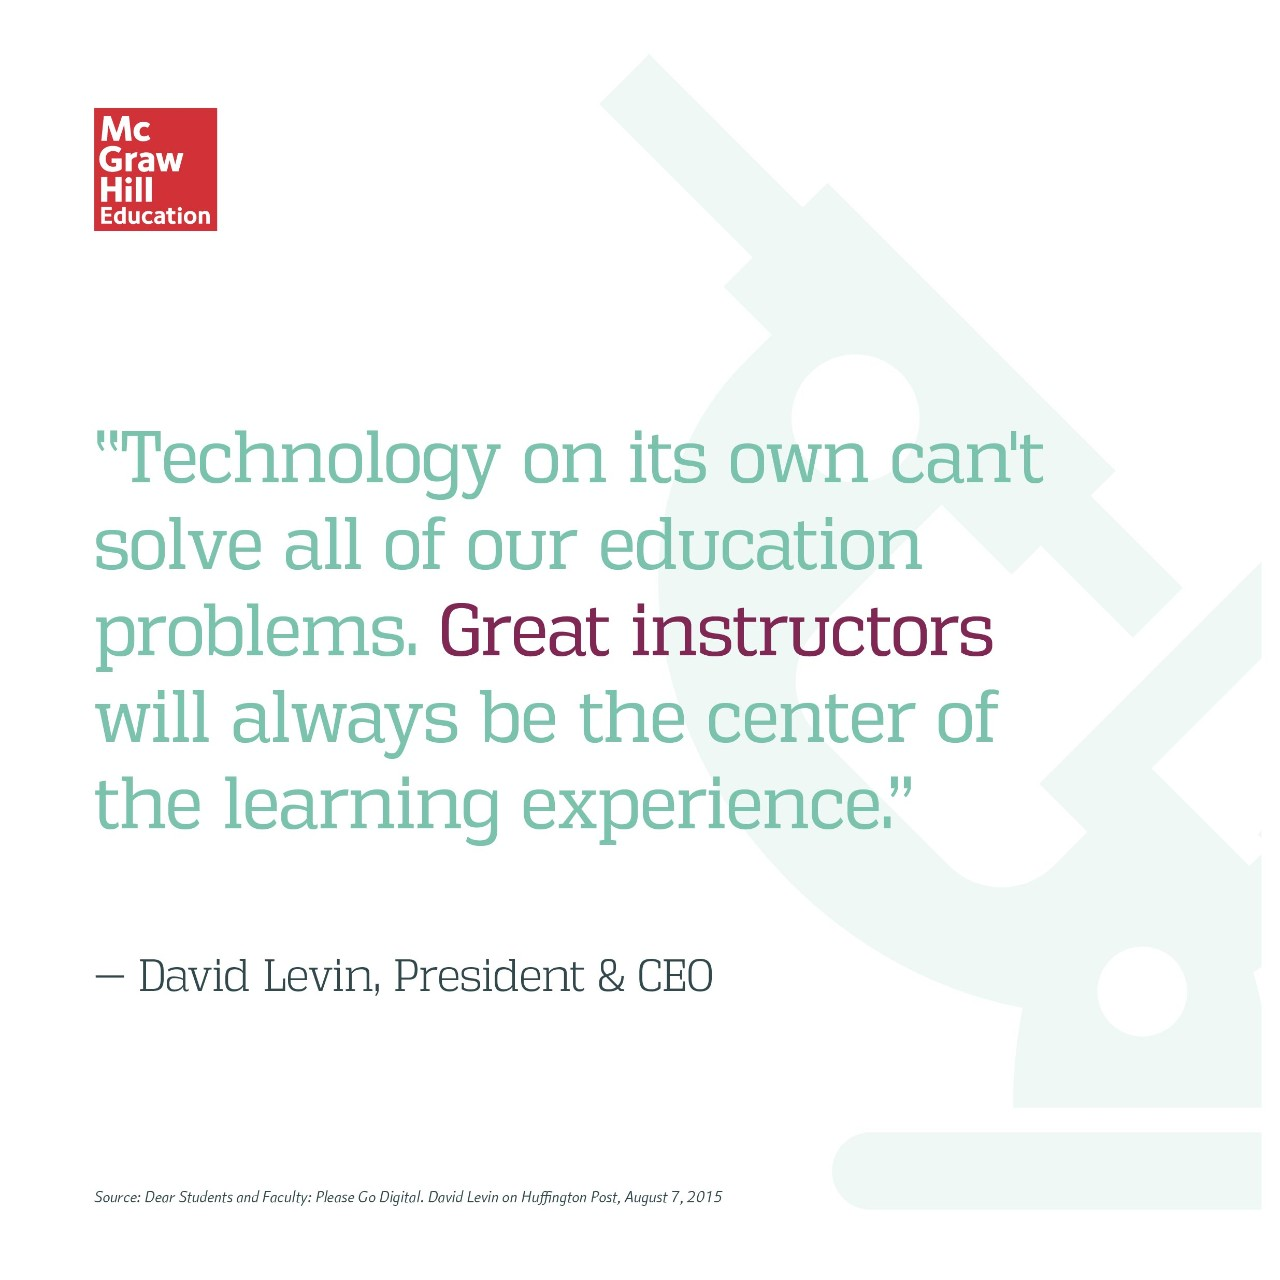 student-faculty-please-go-digital-david-levin-quote-2